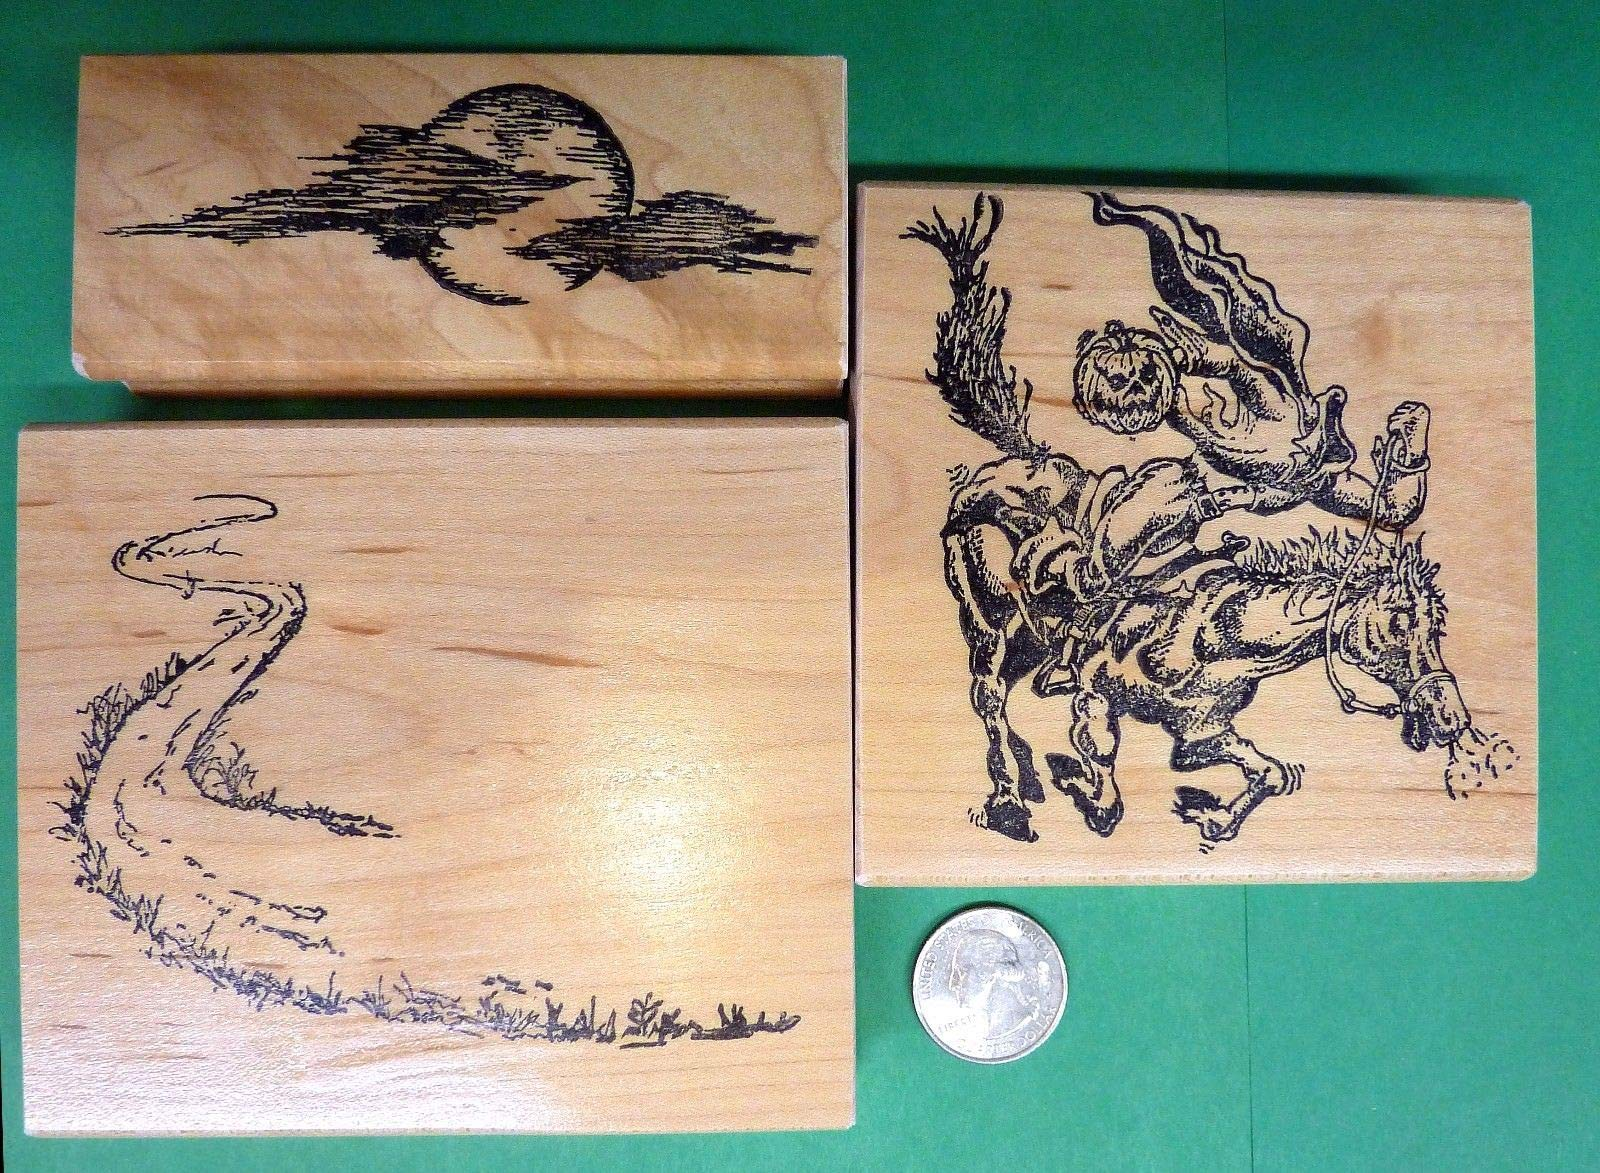 Quality Custom Rubber Stamps Headless Horseman Wood Mounted Rubber Stamp Set of 3 Pieces, Halloween Carved Wooden Stamps by Wood Stamp